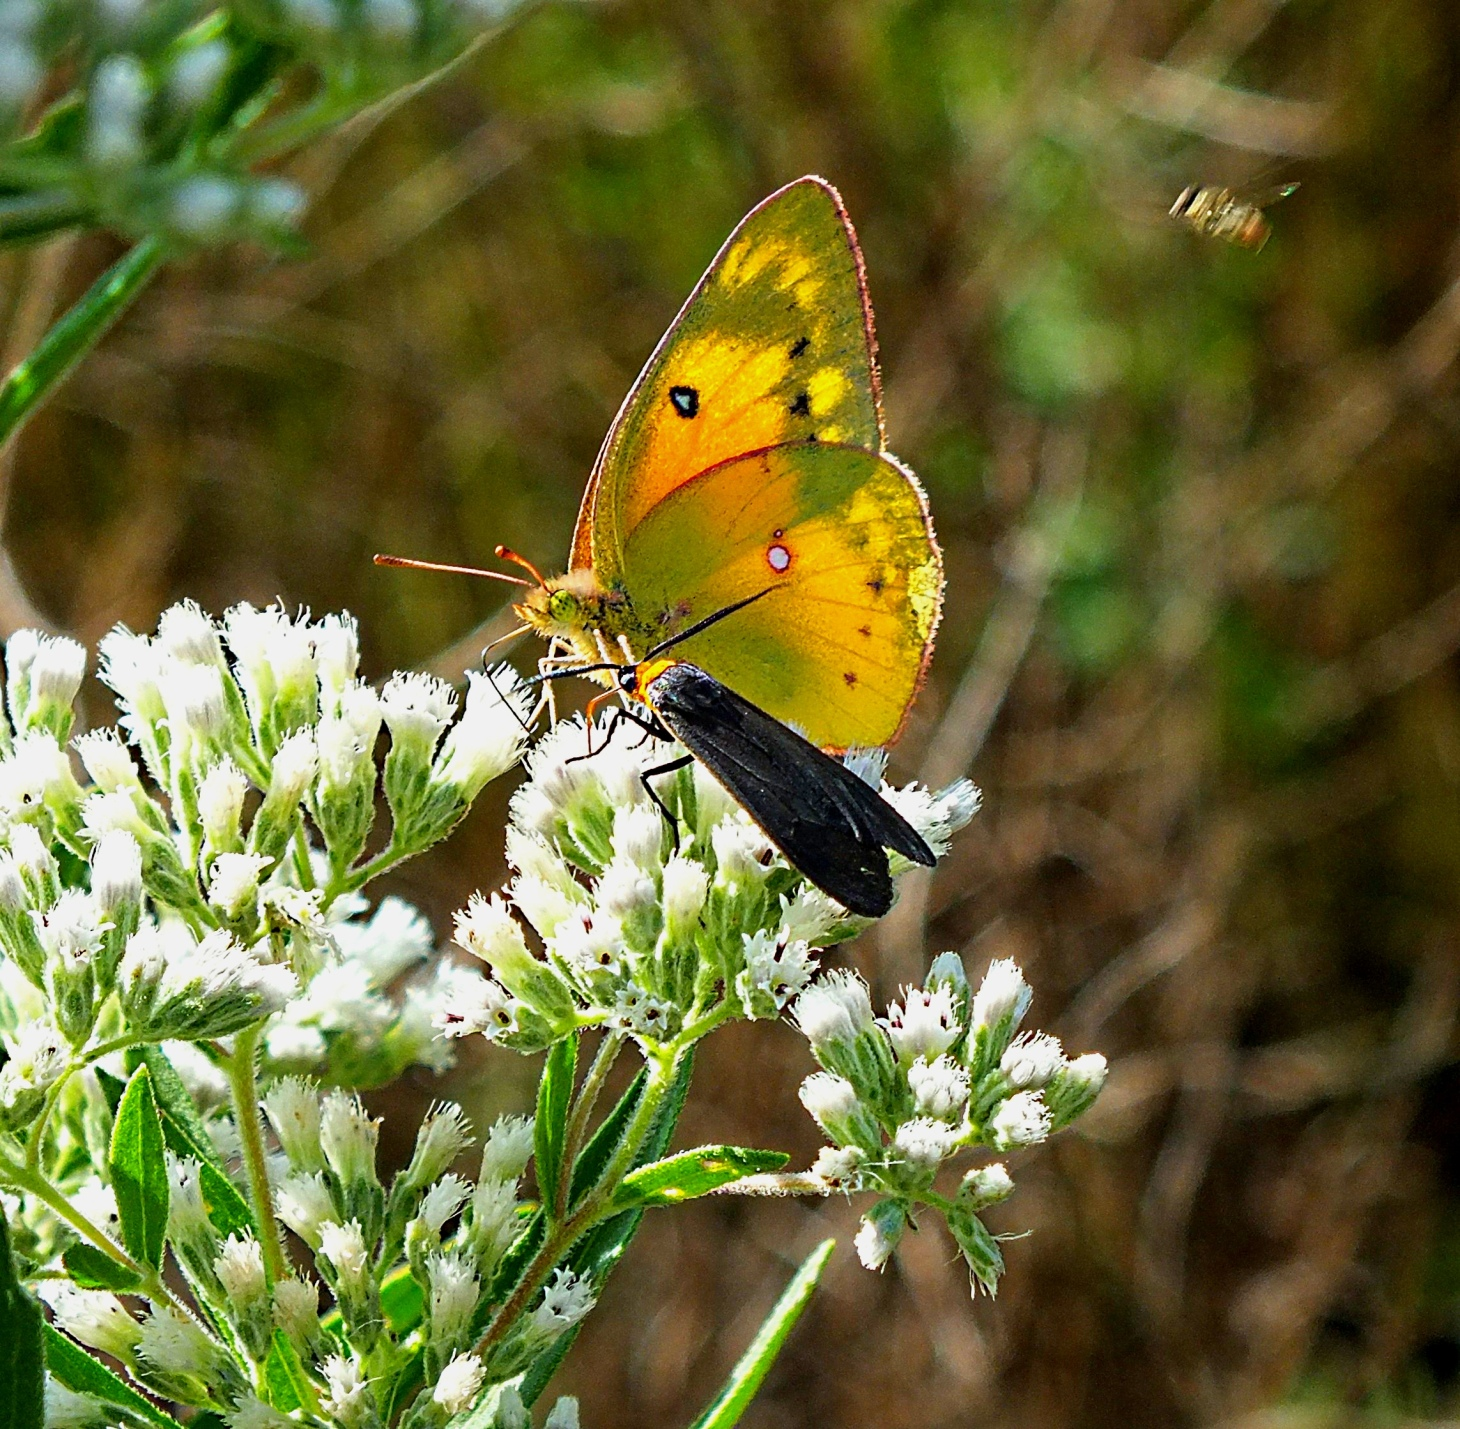 Sulphur Butterfly and Fire Beetle. The Important Conference (2). Photo by Thomas Peace 2014